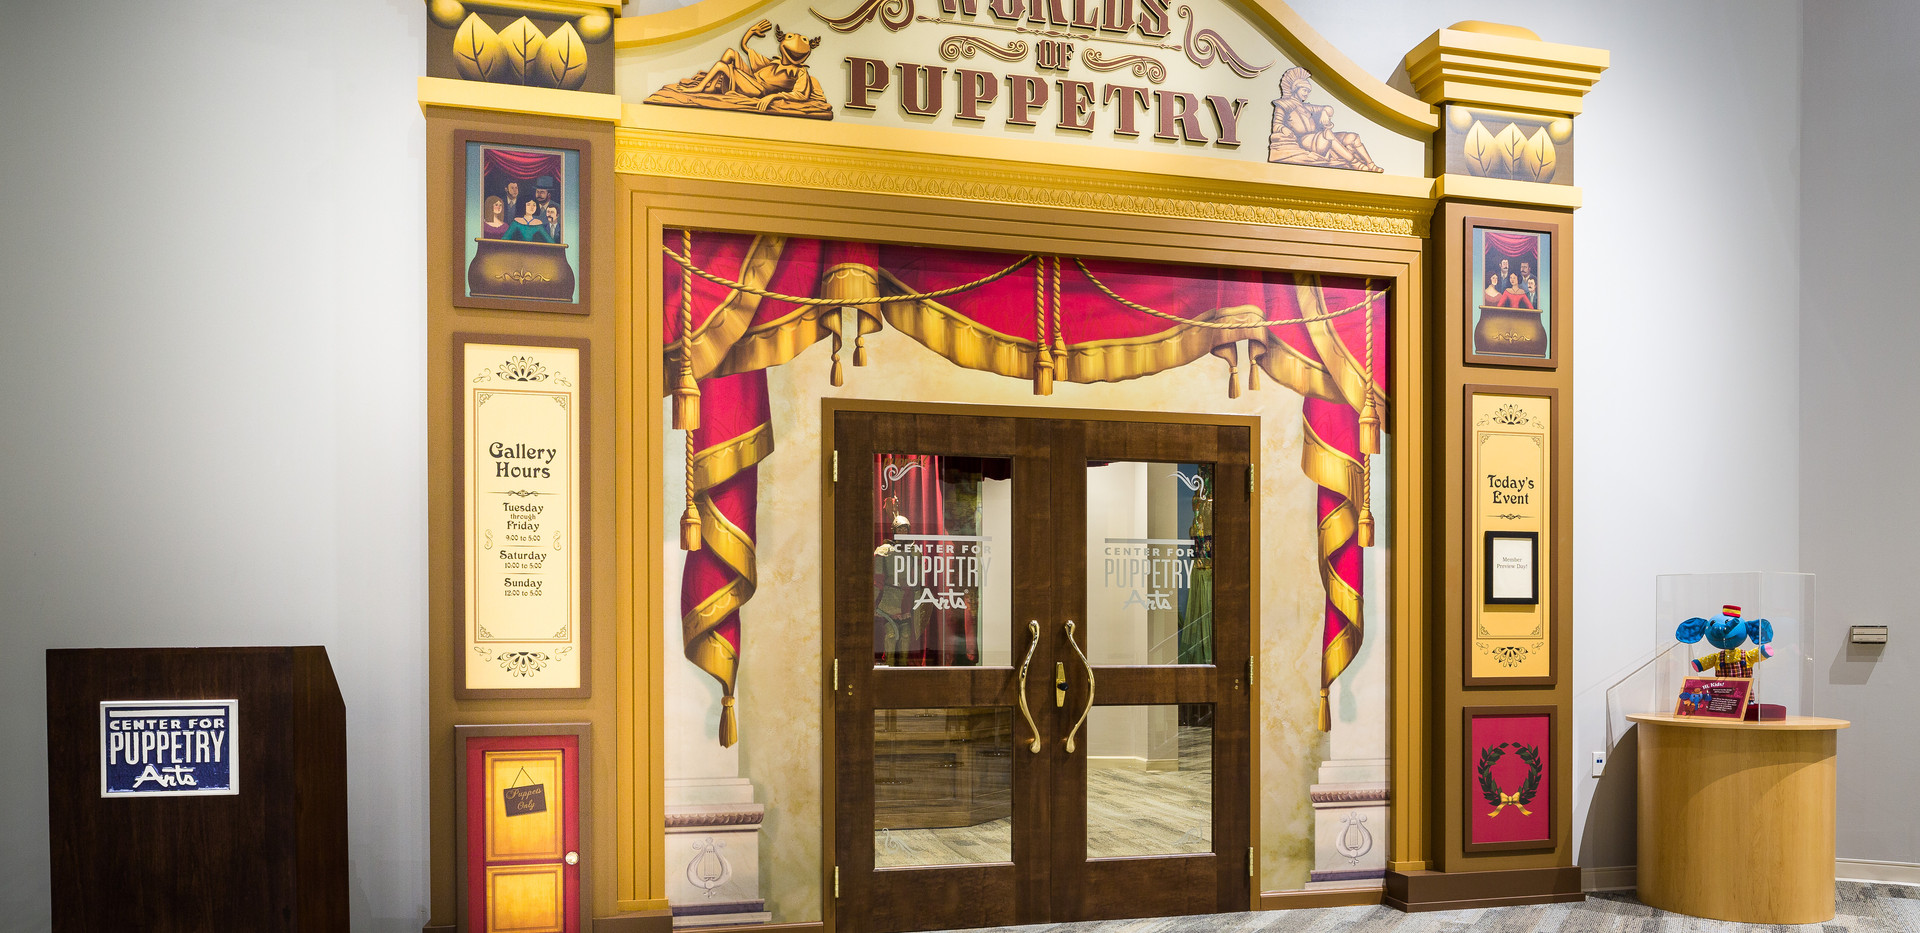 Center for Puppetry Arts Entrance